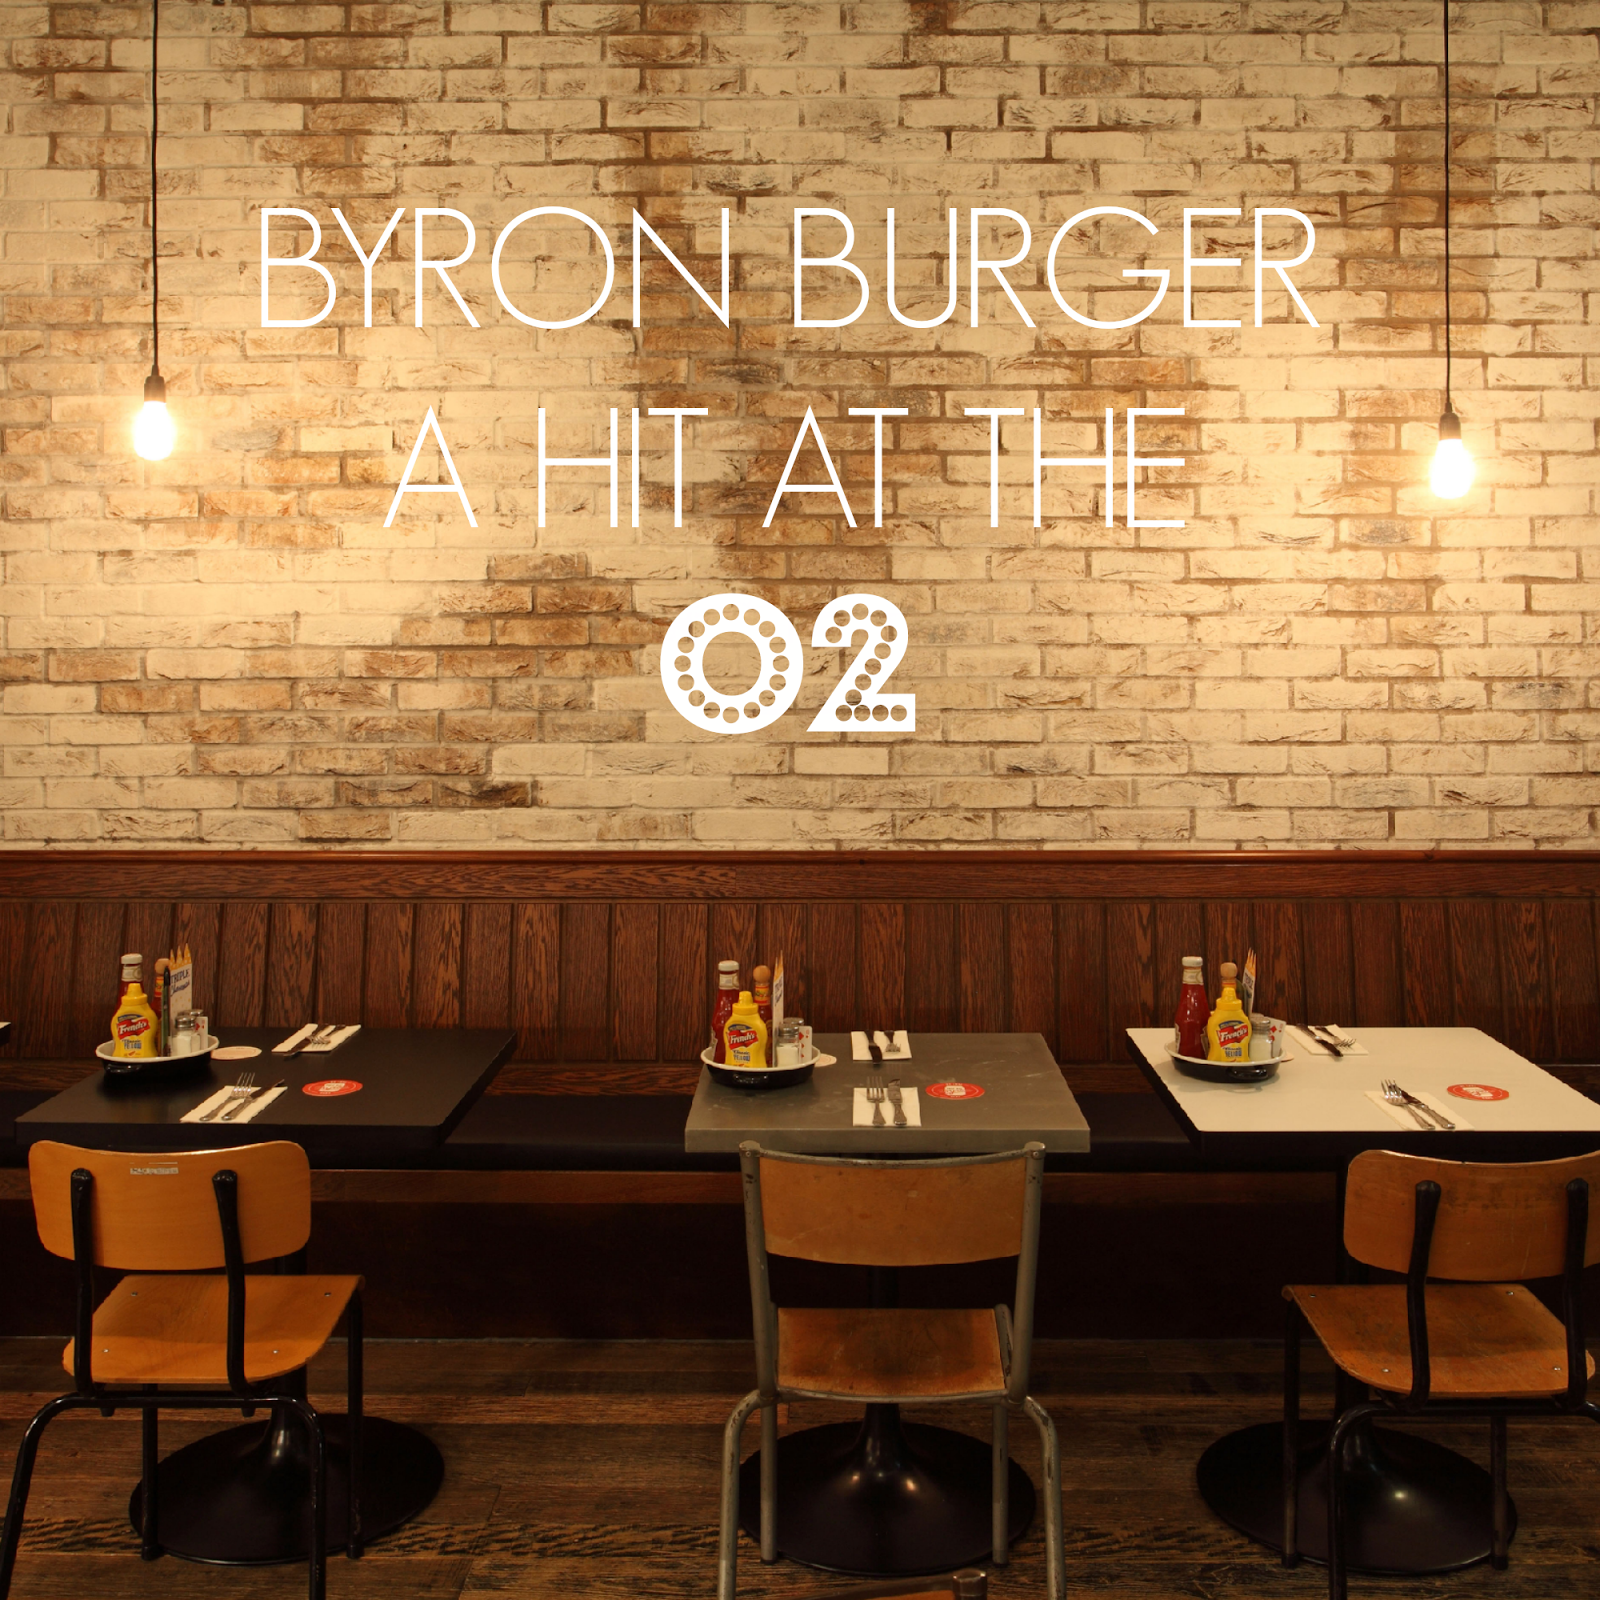 Hopinteriors.com | UK Interior Design Blog: Byron Burger: Food Heaven